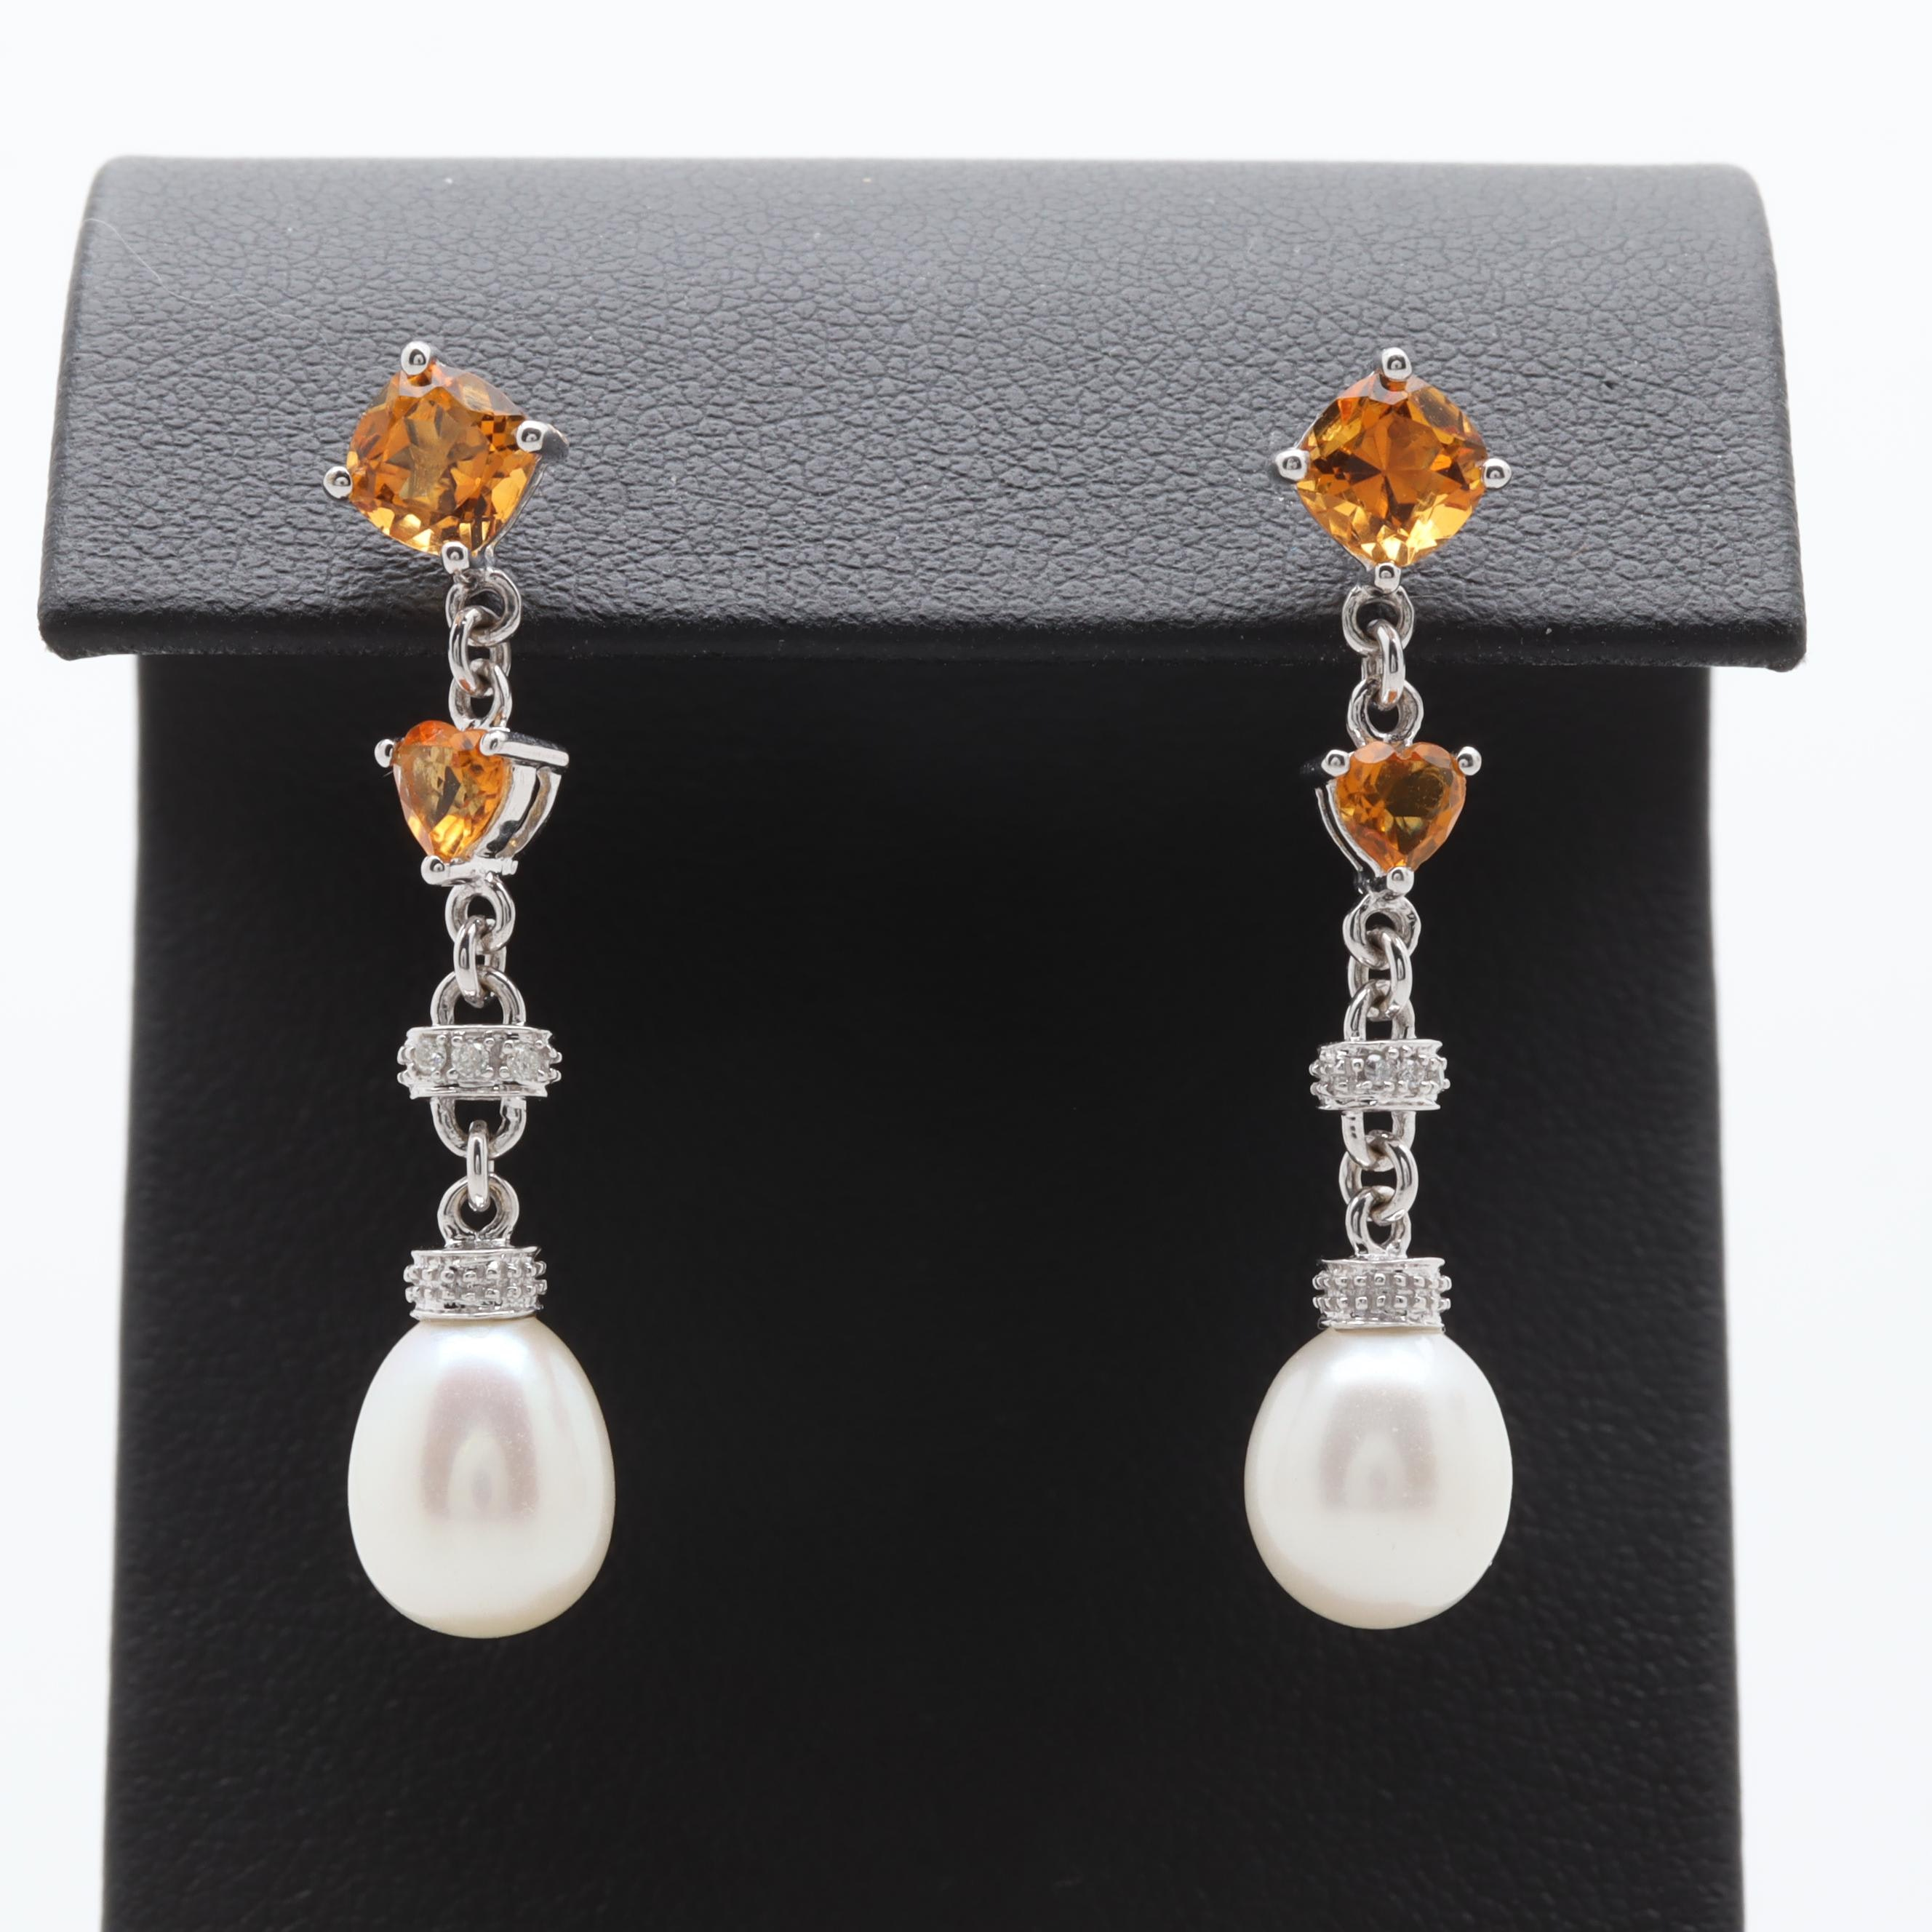 14K White Gold Citrine, Diamond and Cultured Pearl Earrings